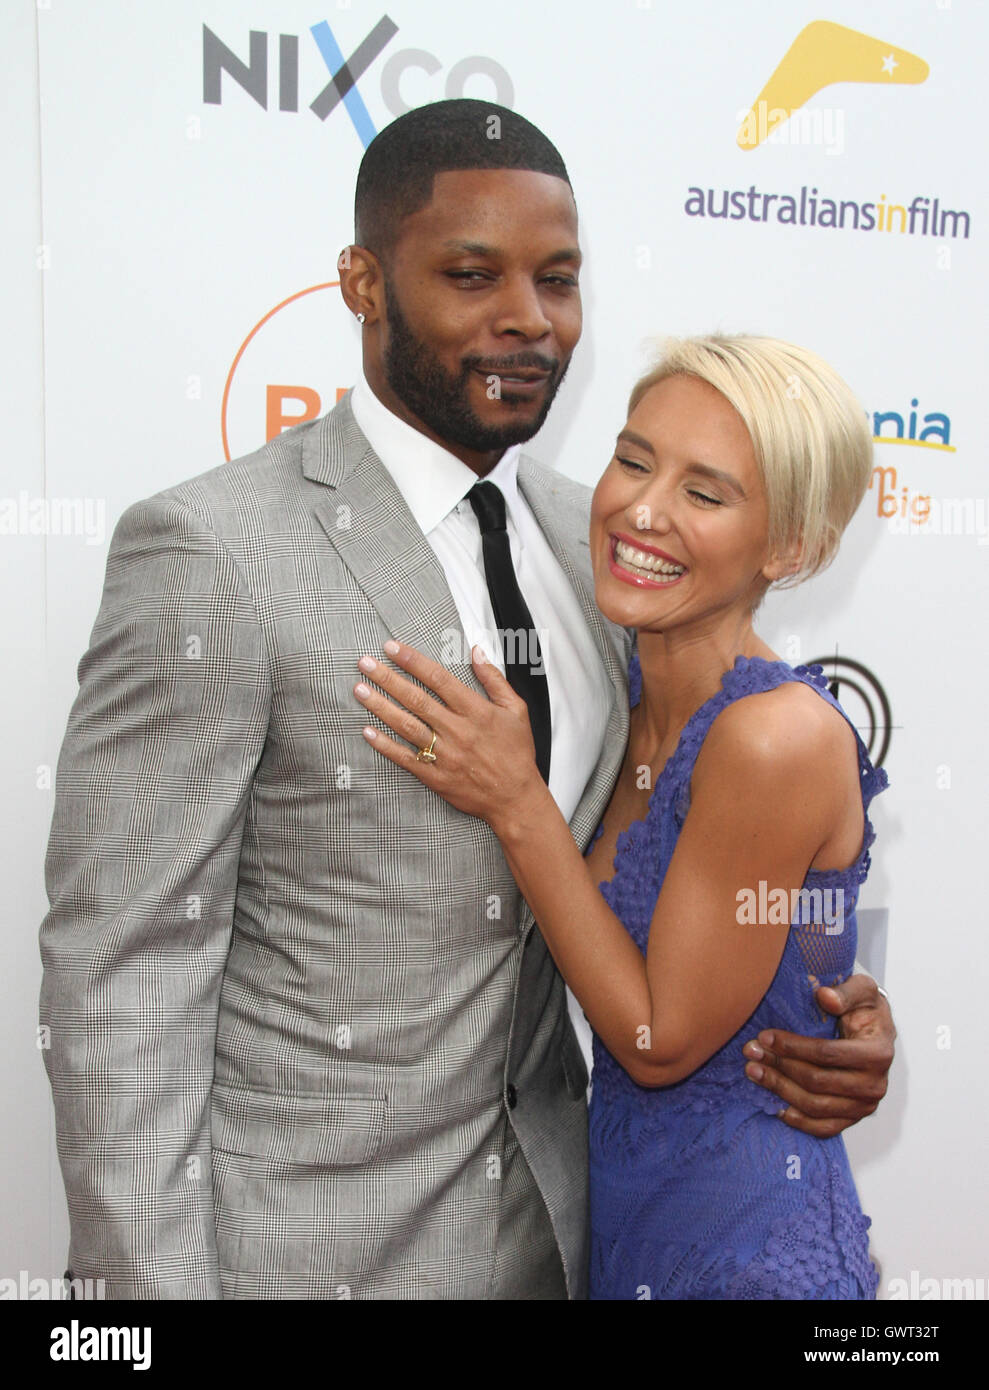 Australians In Film: Heath Ledger Scholarship Dinner  Featuring: Kerry Rhodes, Nicky Whelan Where: Beverly Hills, - Stock Image